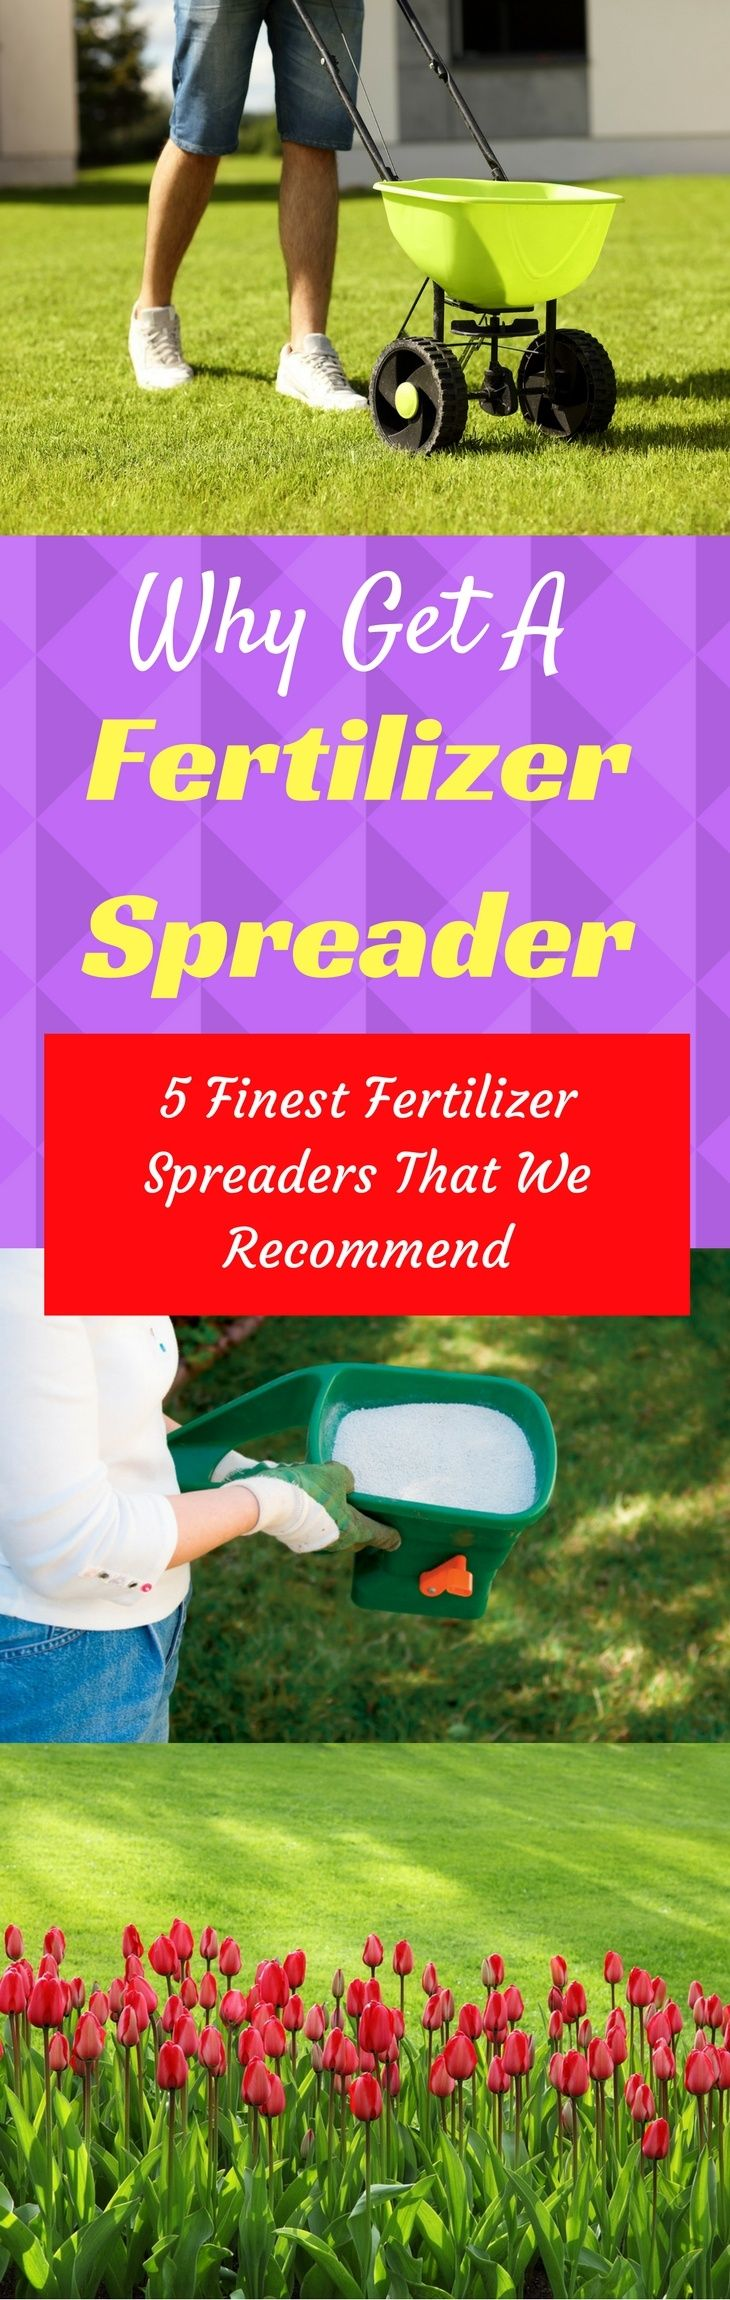 Proper fertilization is essential for the perfect garden. Learn what a fertilizer spreaders is, its different types, and which one you should get for your lawn. Source: https://gardenambition.com/best-fertilizer-spreader/